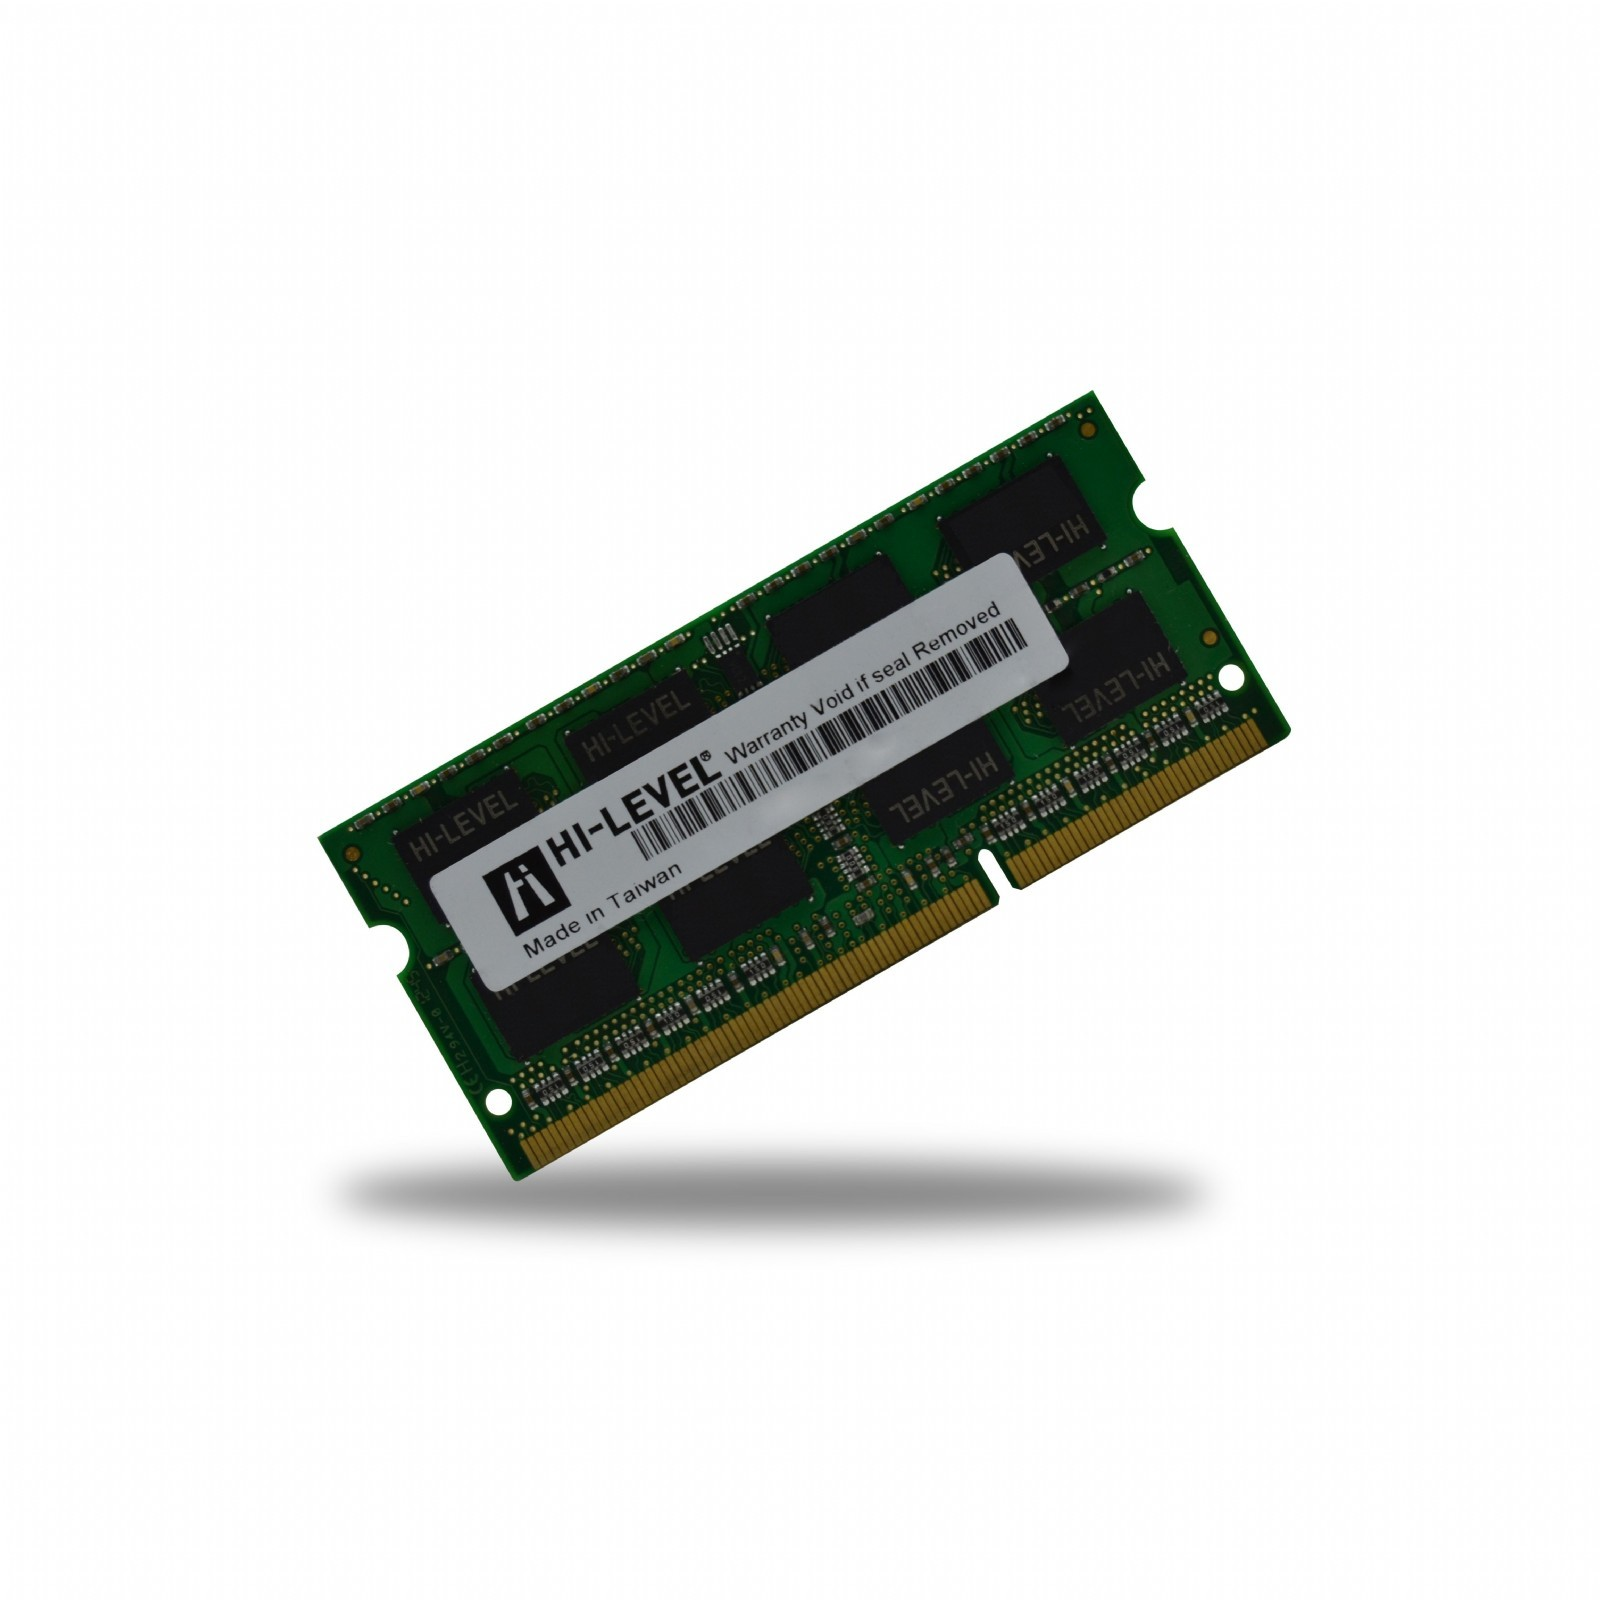 HI-LEVEL 16GB 2666MHz DDR4 1.2V HLV-SOPC21300D4-16G NOTEBOOK RAM